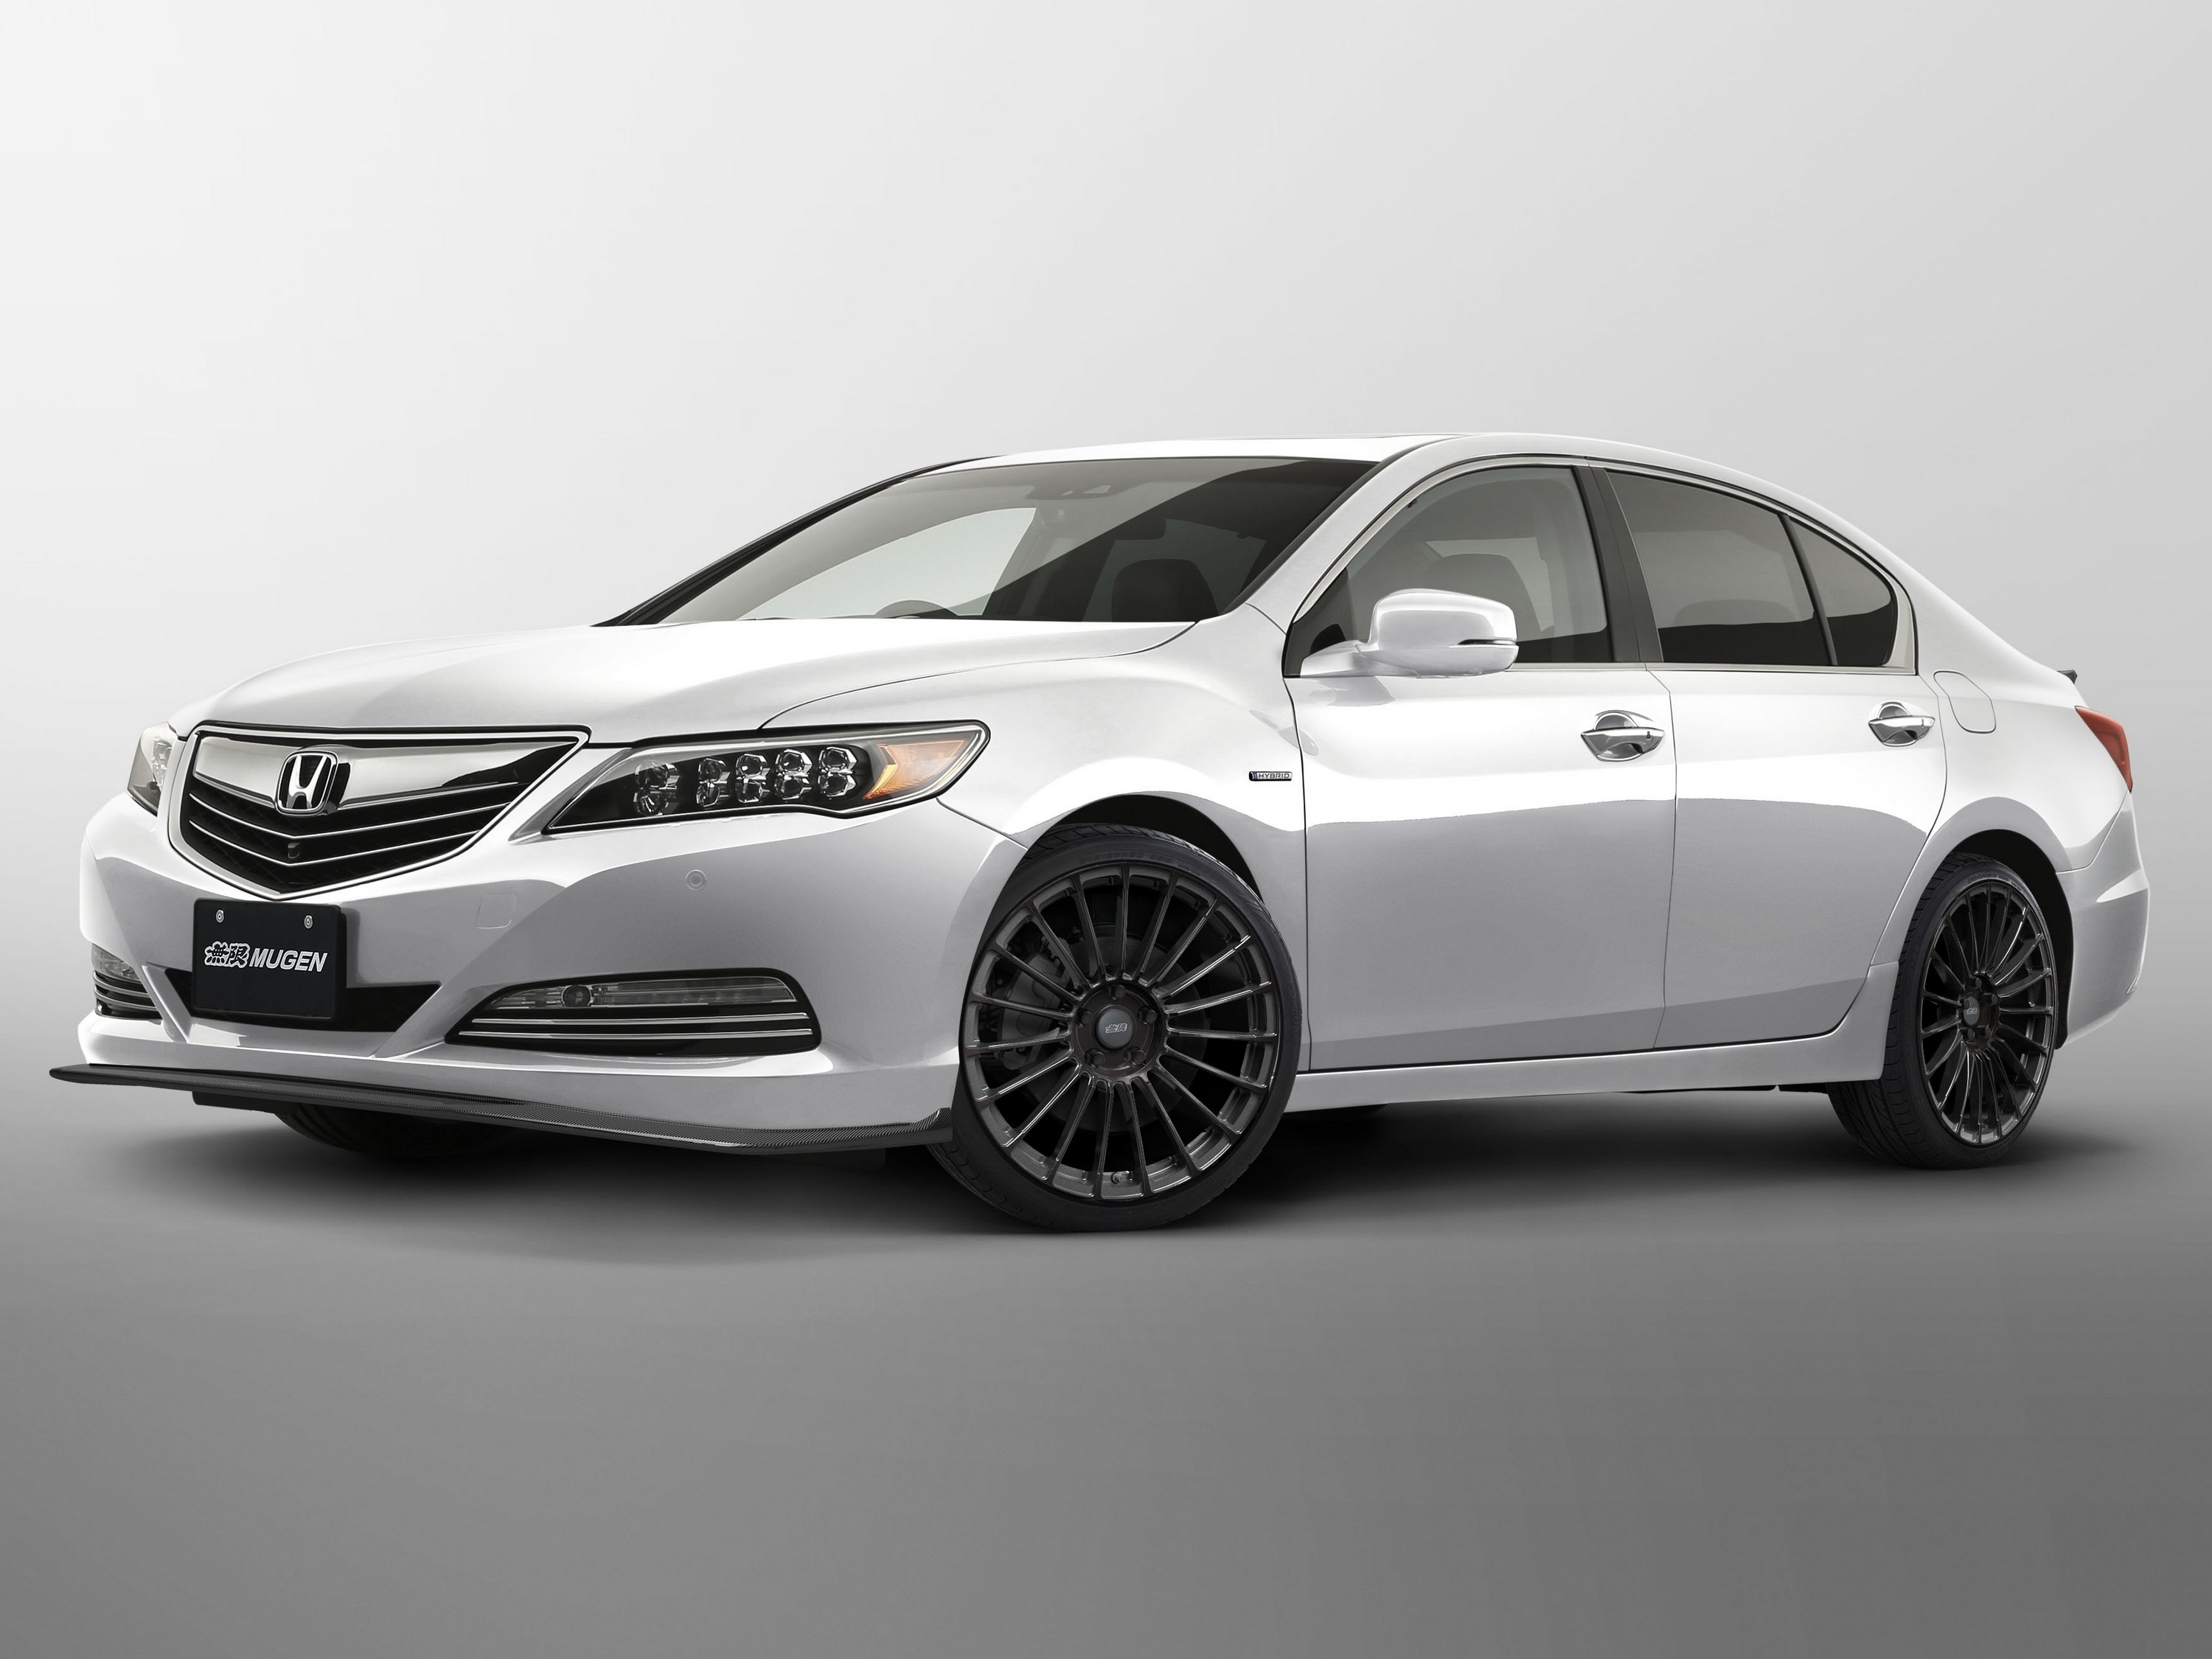 Honda Legend Specs Amp Photos 2014 2015 2016 2017 2018